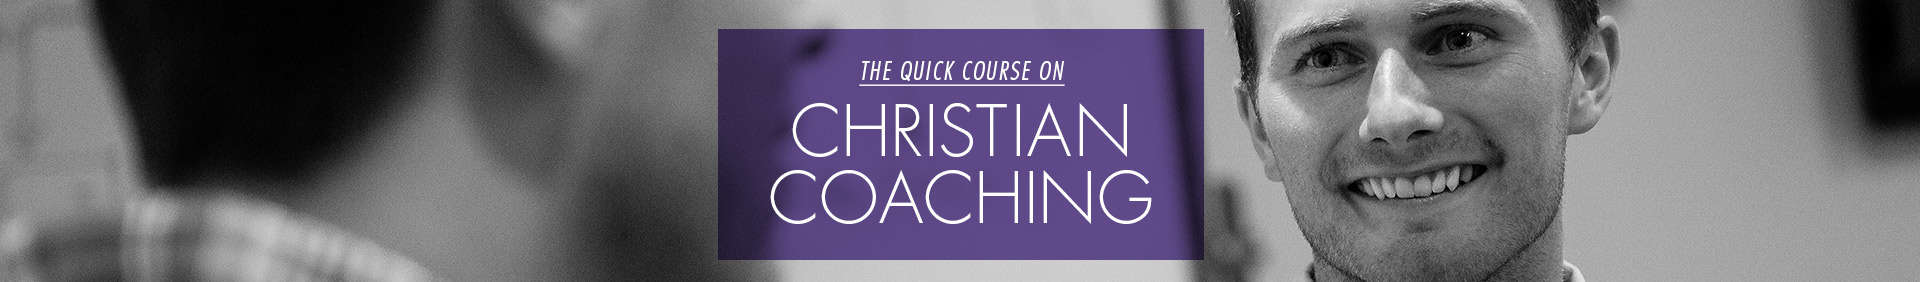 Quick Course on Christian Coaching Header Image